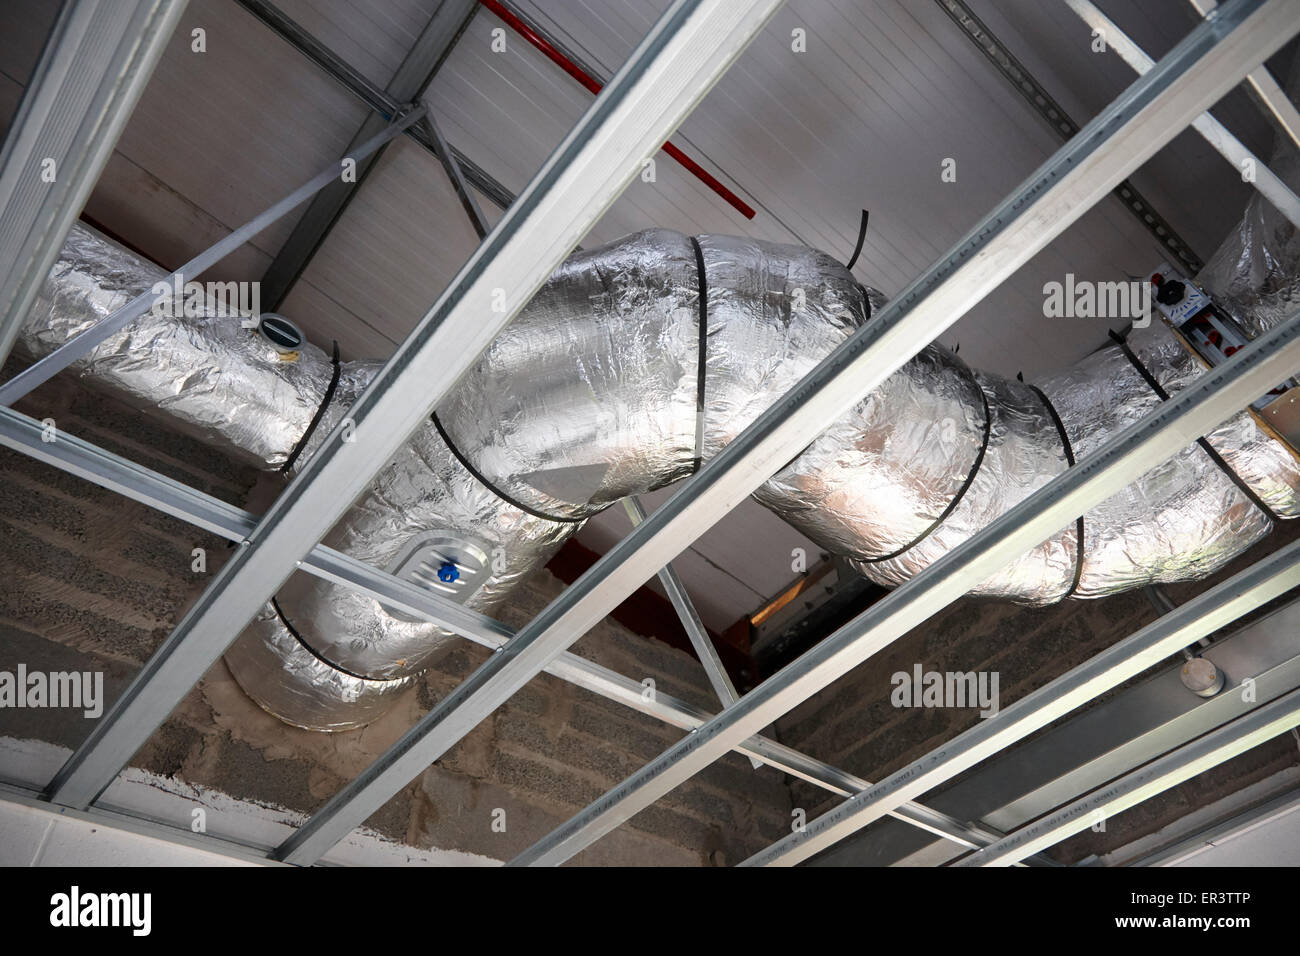 overhead air extraction conditioning conduit pipes in an industrial building under construction in the uk - Stock Image